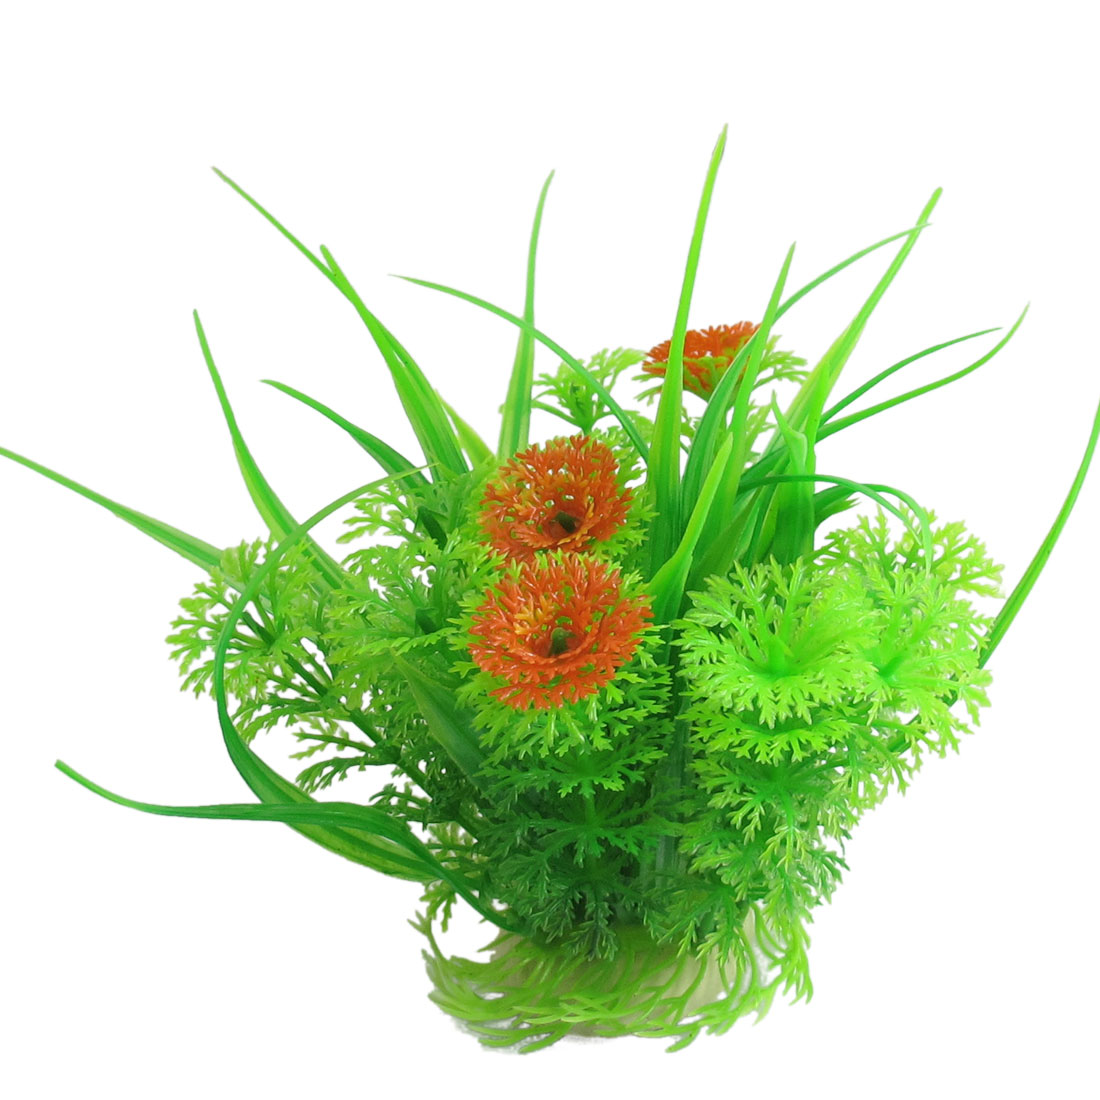 "Aquarium Green Orange Manmade Water Grass Plants Decoration 6.1"" Height"